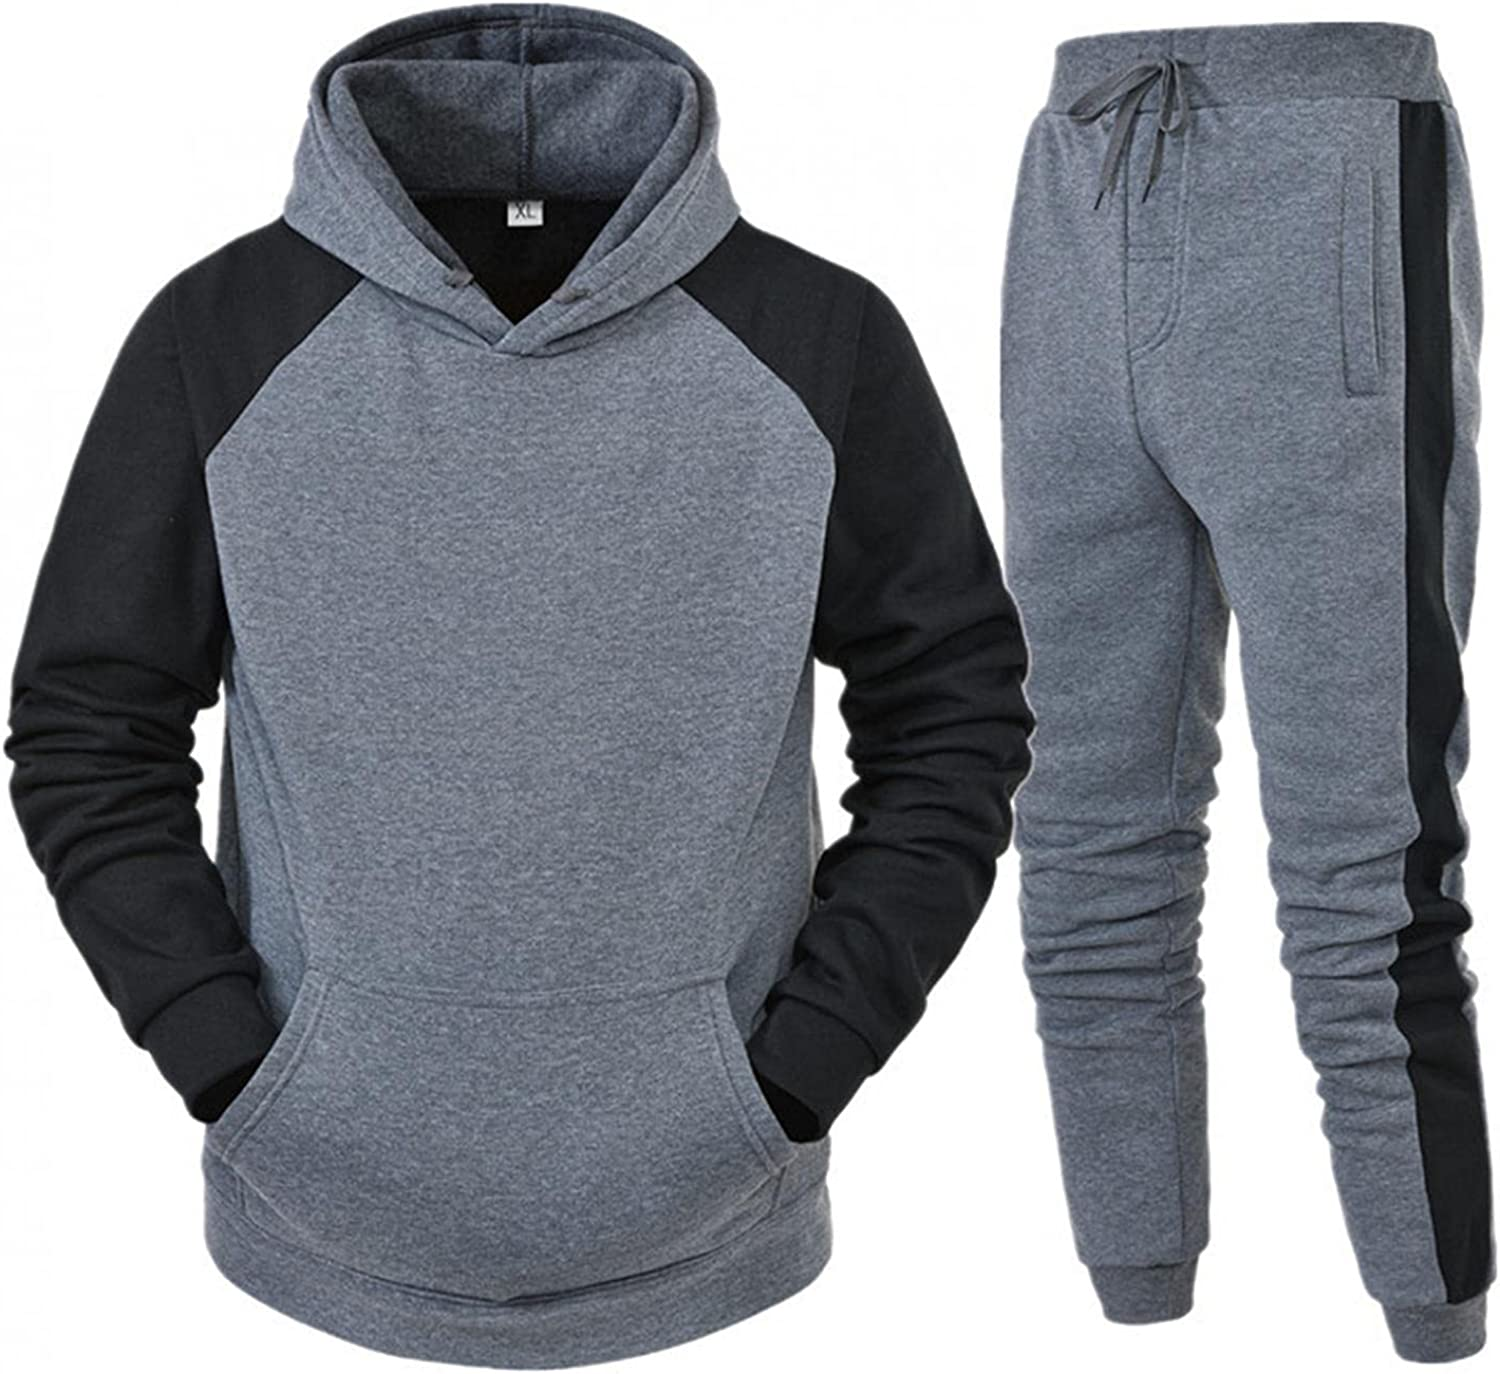 FUNEY Tracksuit for Men Set Casual Long Sleeve Running Jogging Athletic Sports Shirts and Pants Sets for Autumn and Winter